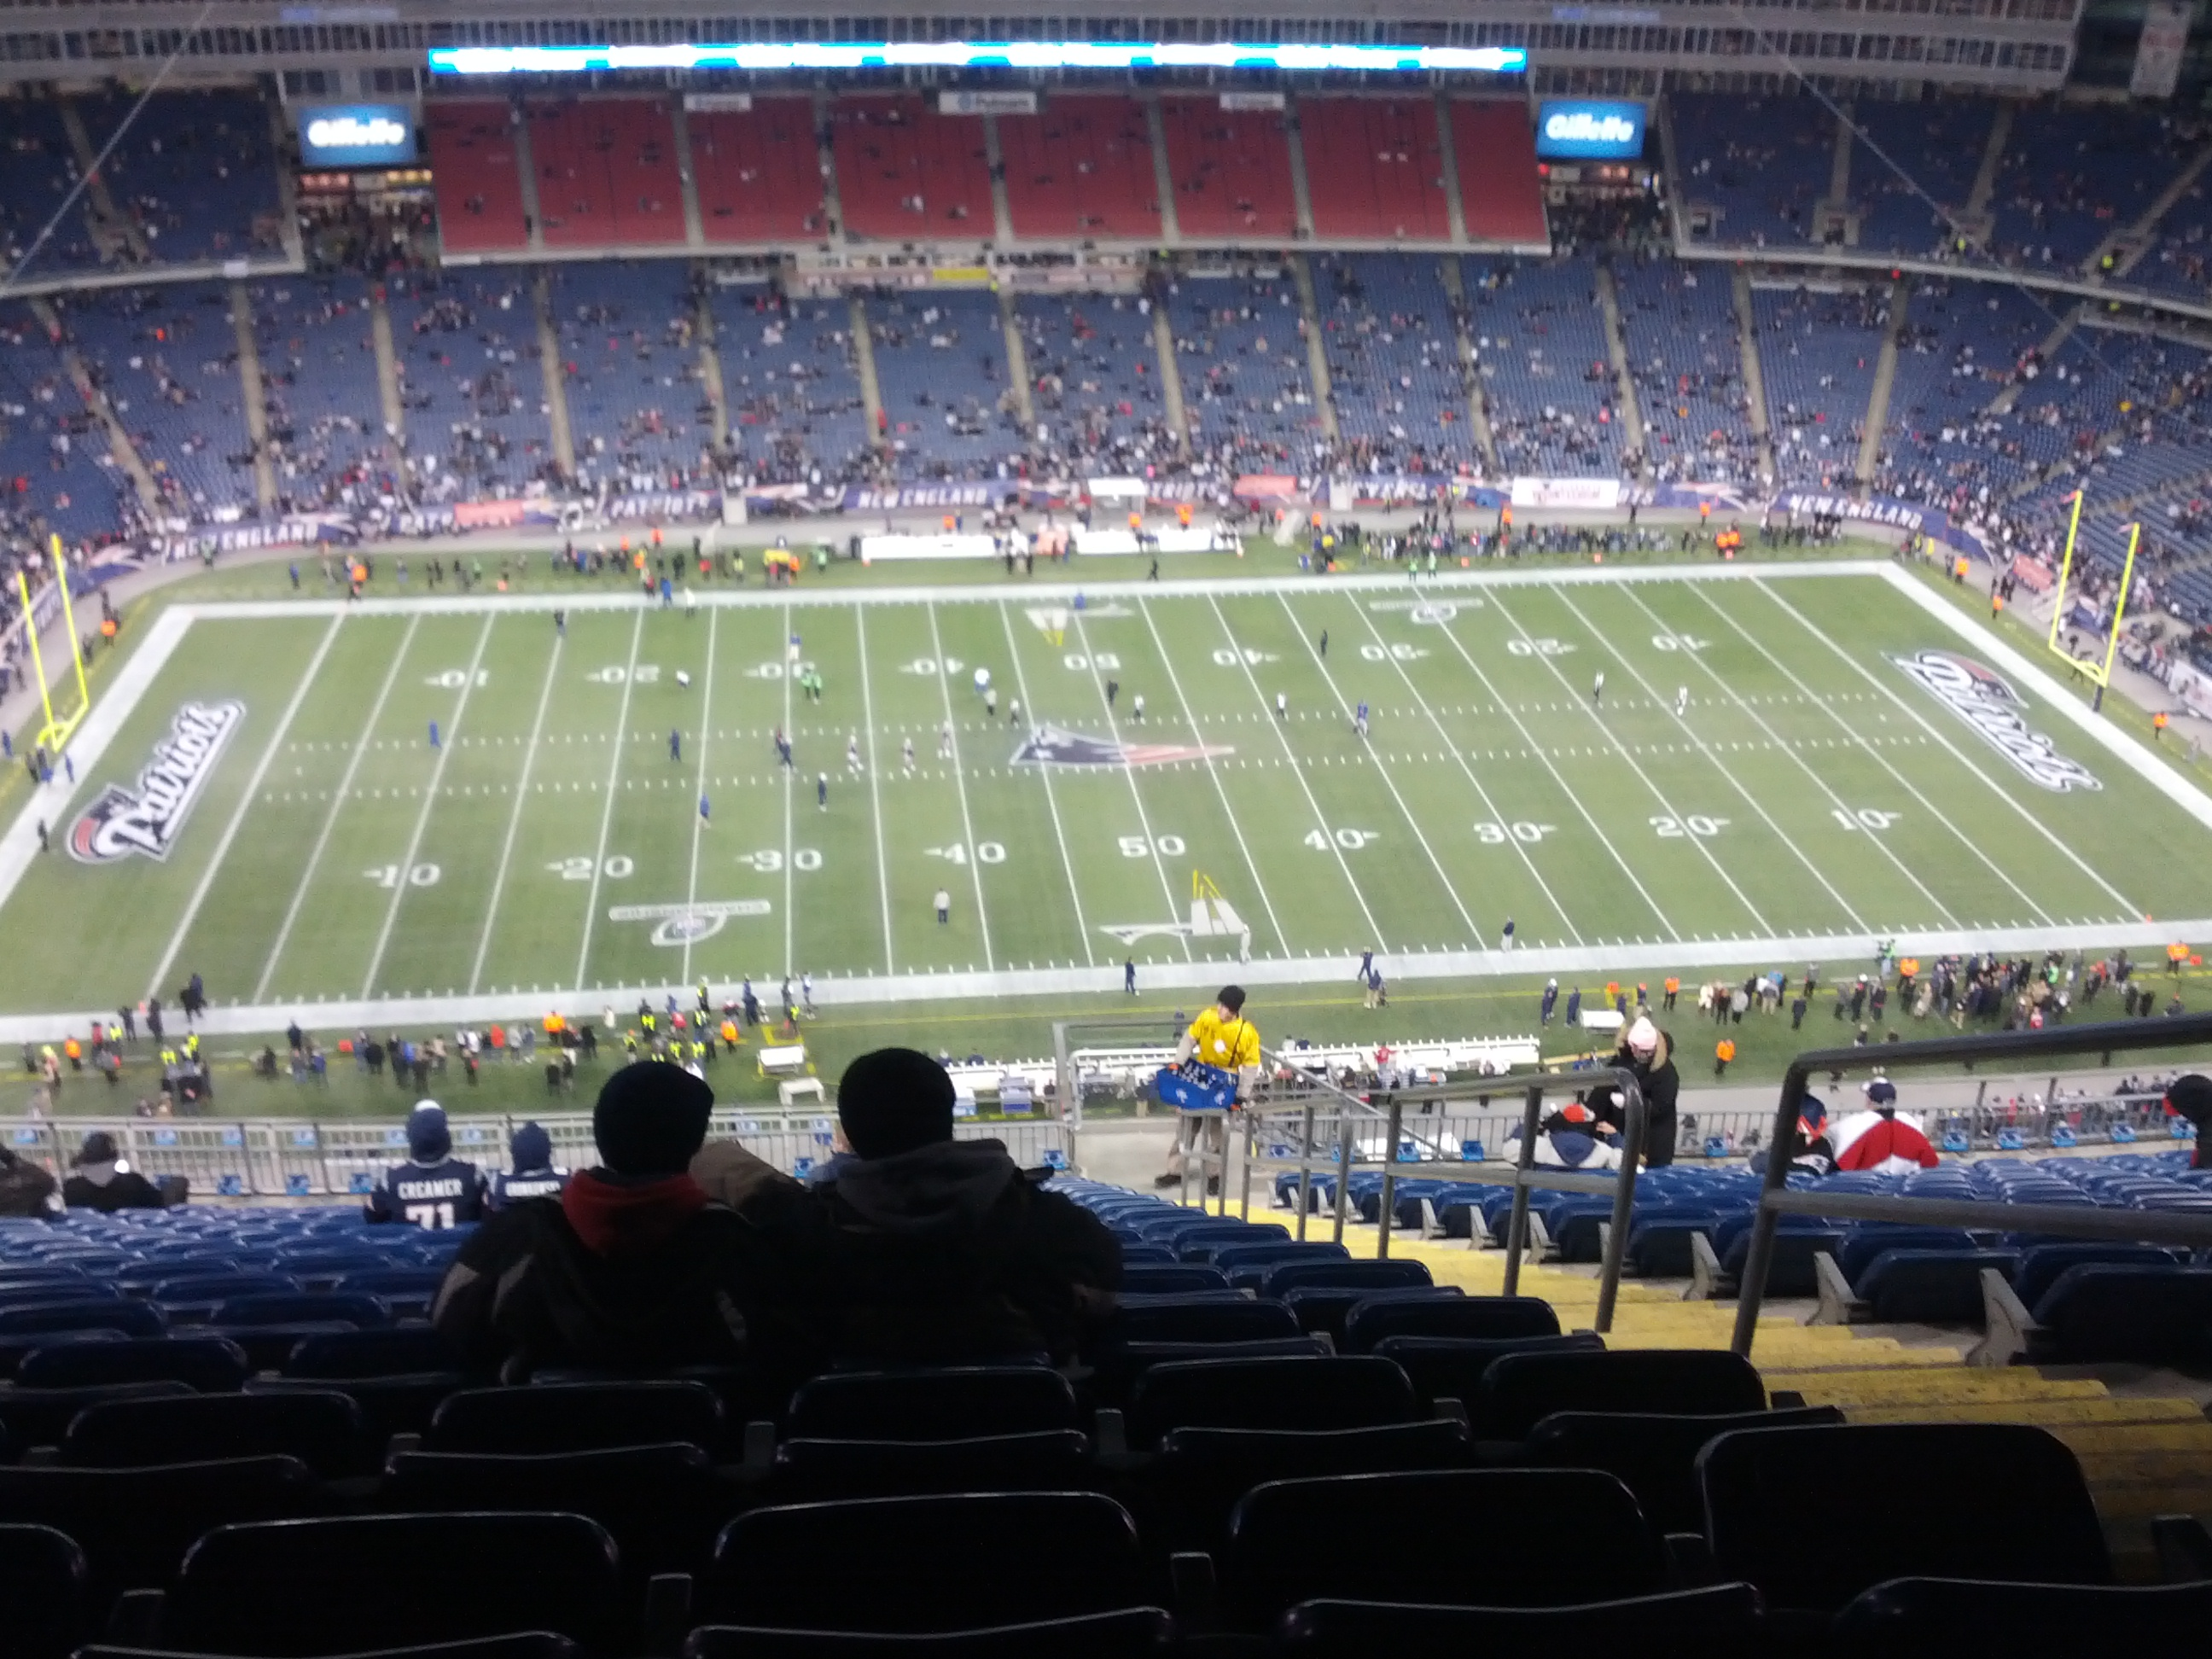 The view from our seats at the 2012 AFC Championship in Gillette Stadium.